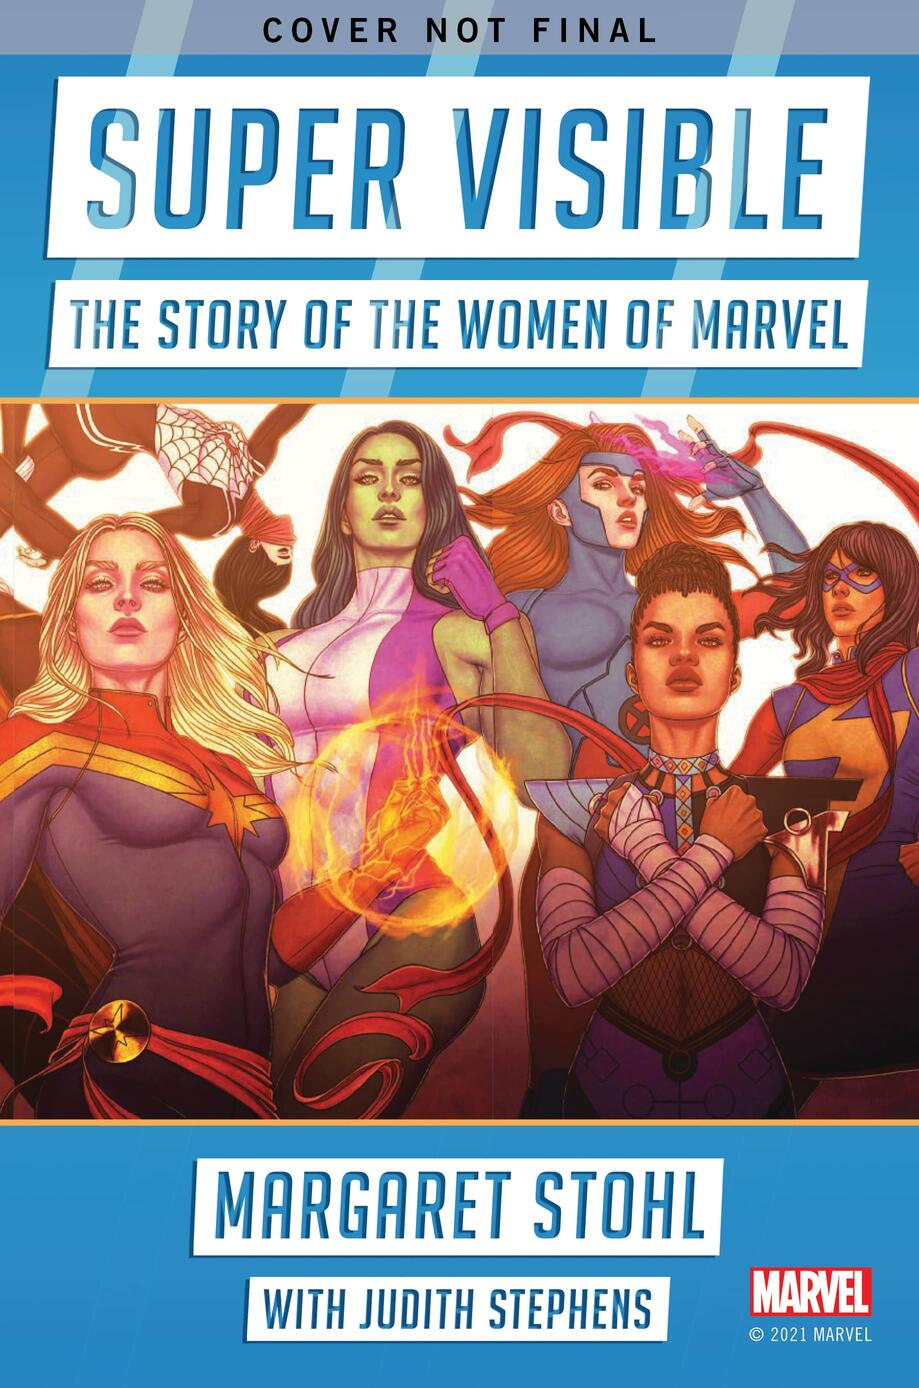 SUPER VISIBLE: THE STORY OF THE WOMEN OF MARVEL (Not Final Cover)